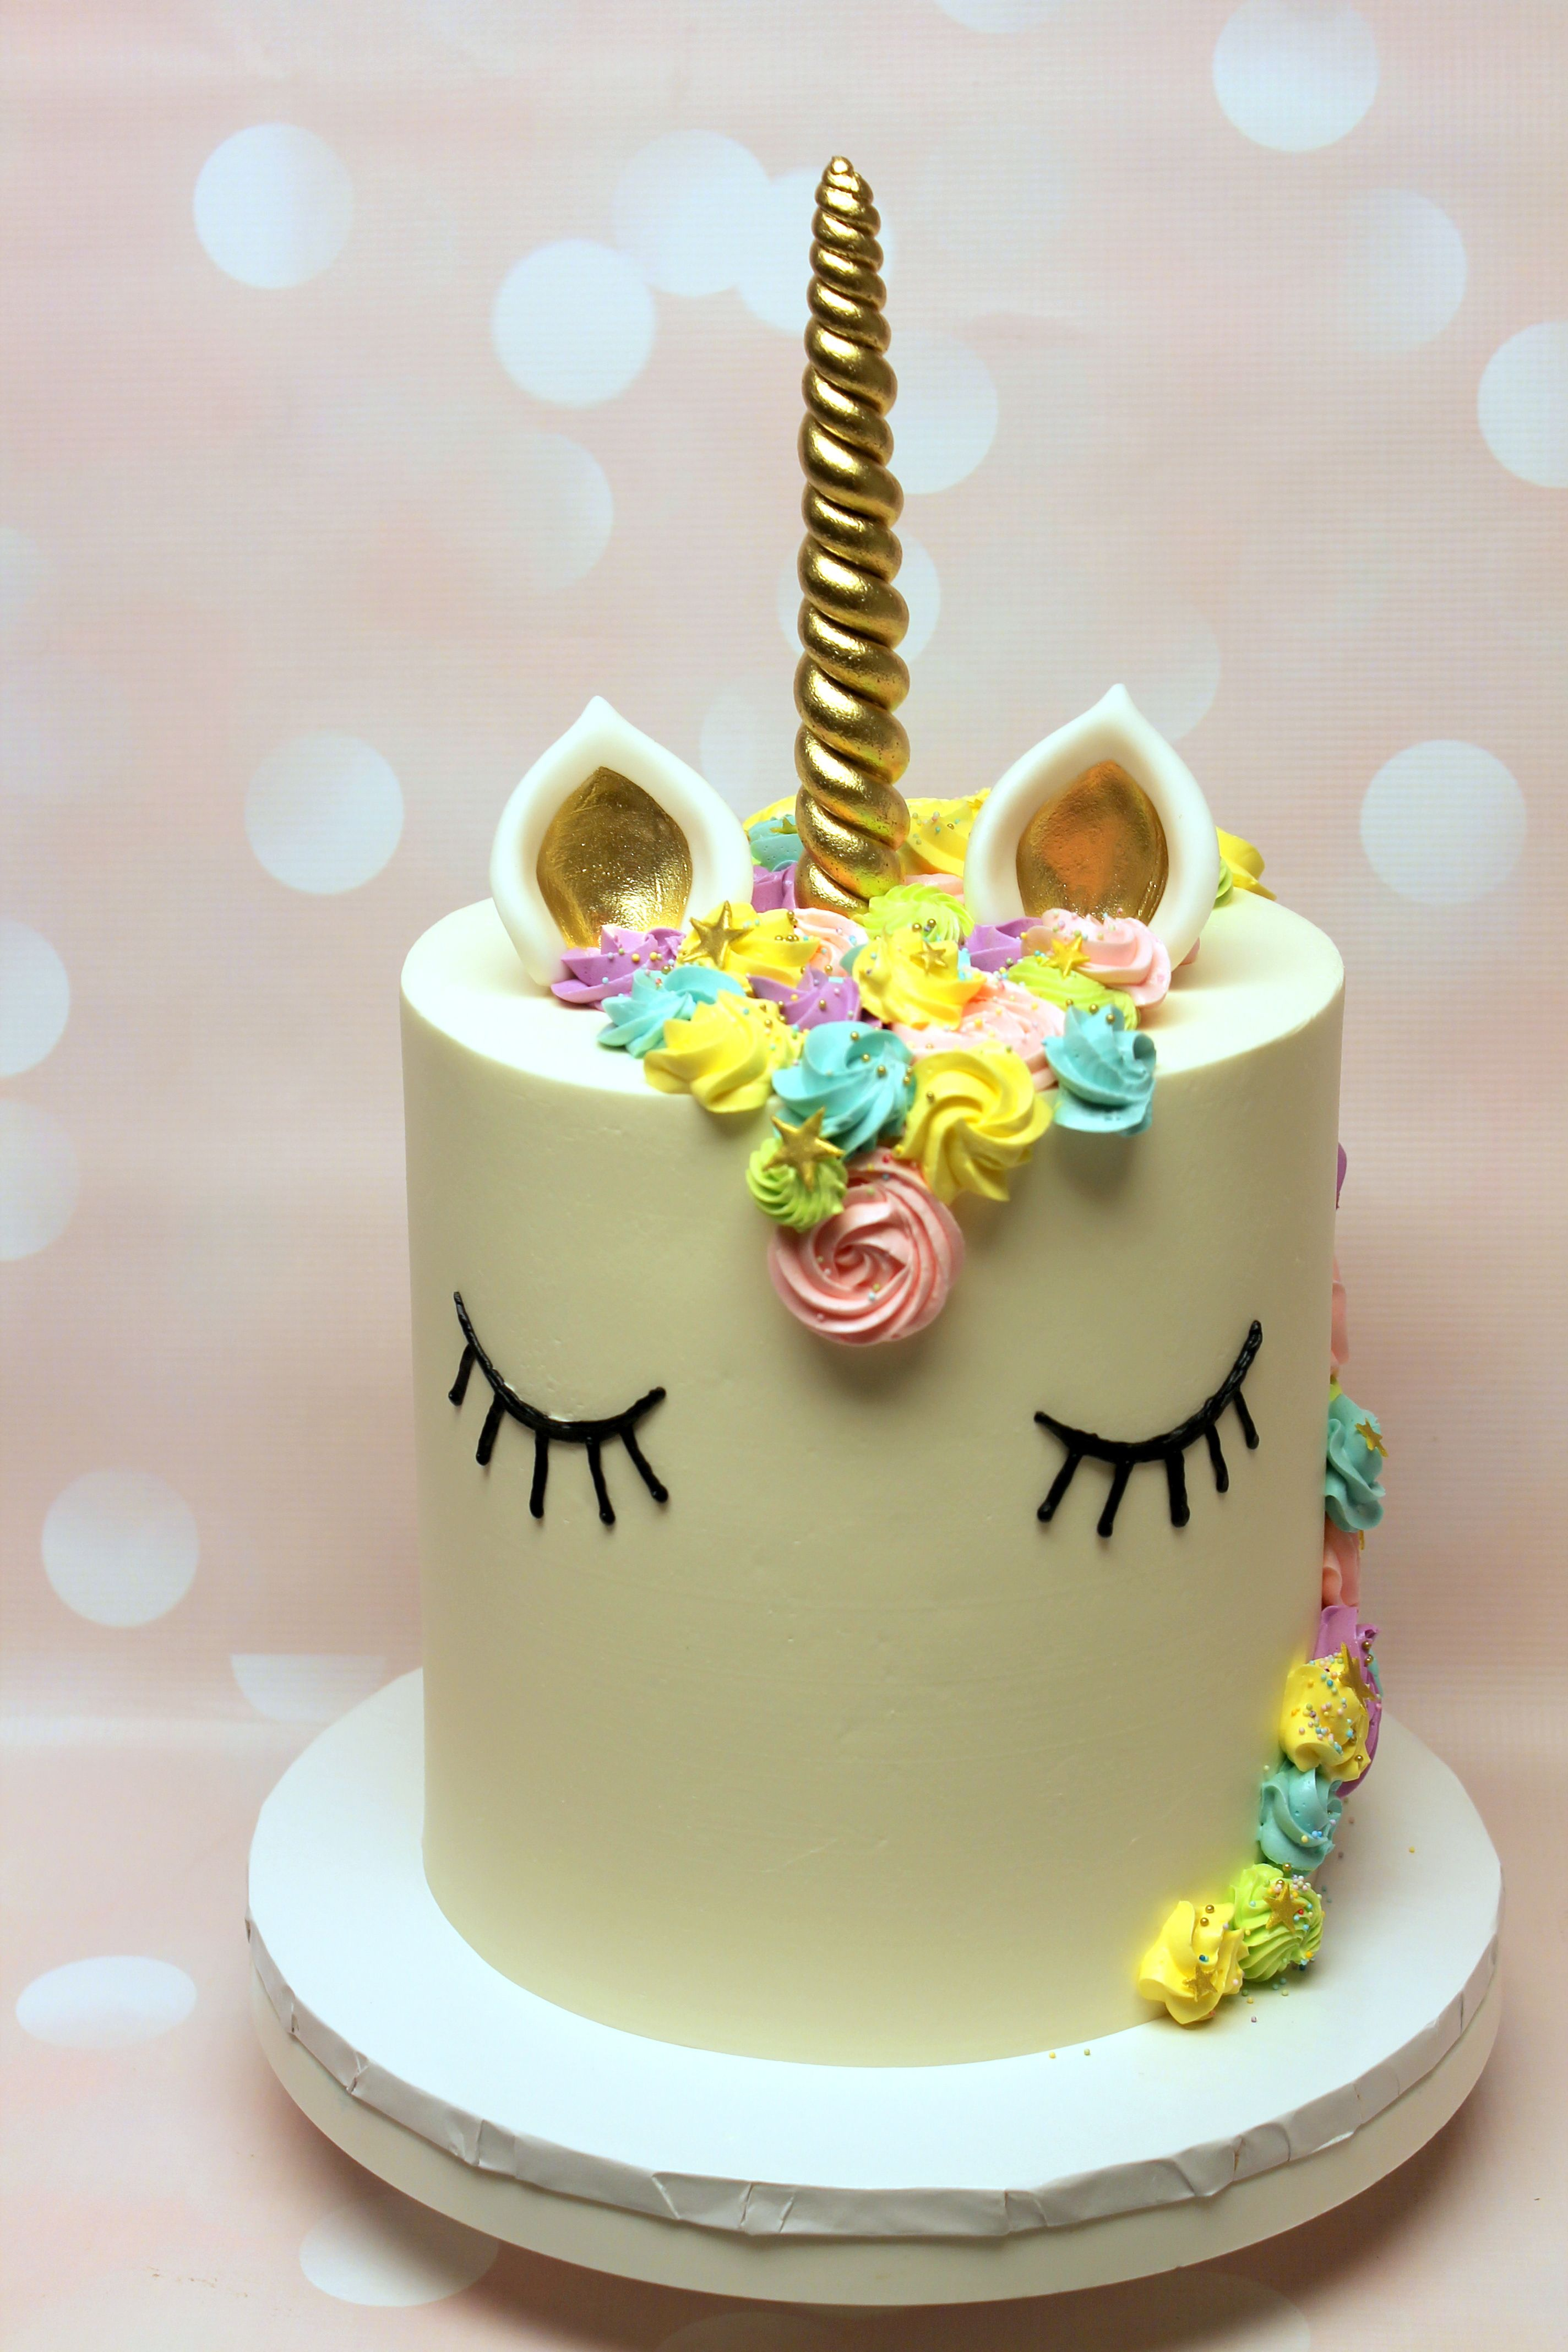 Who says unicorns aren't real? Ours are made from cake!